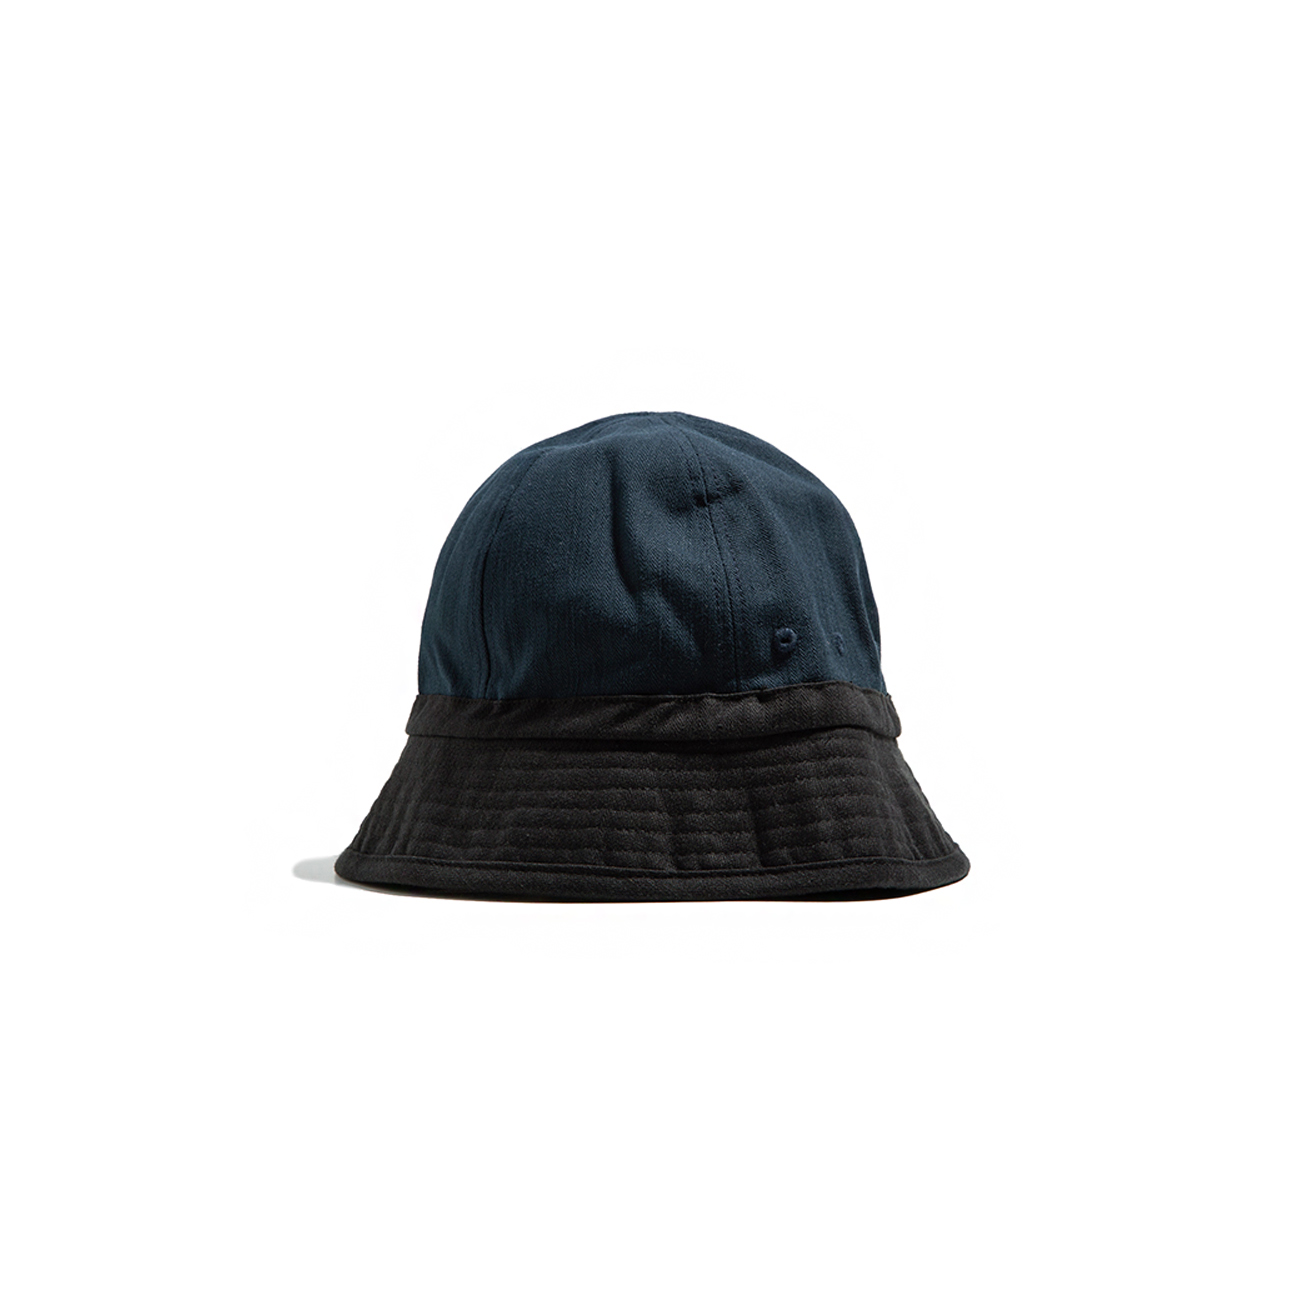 HBT French Bucket Hat